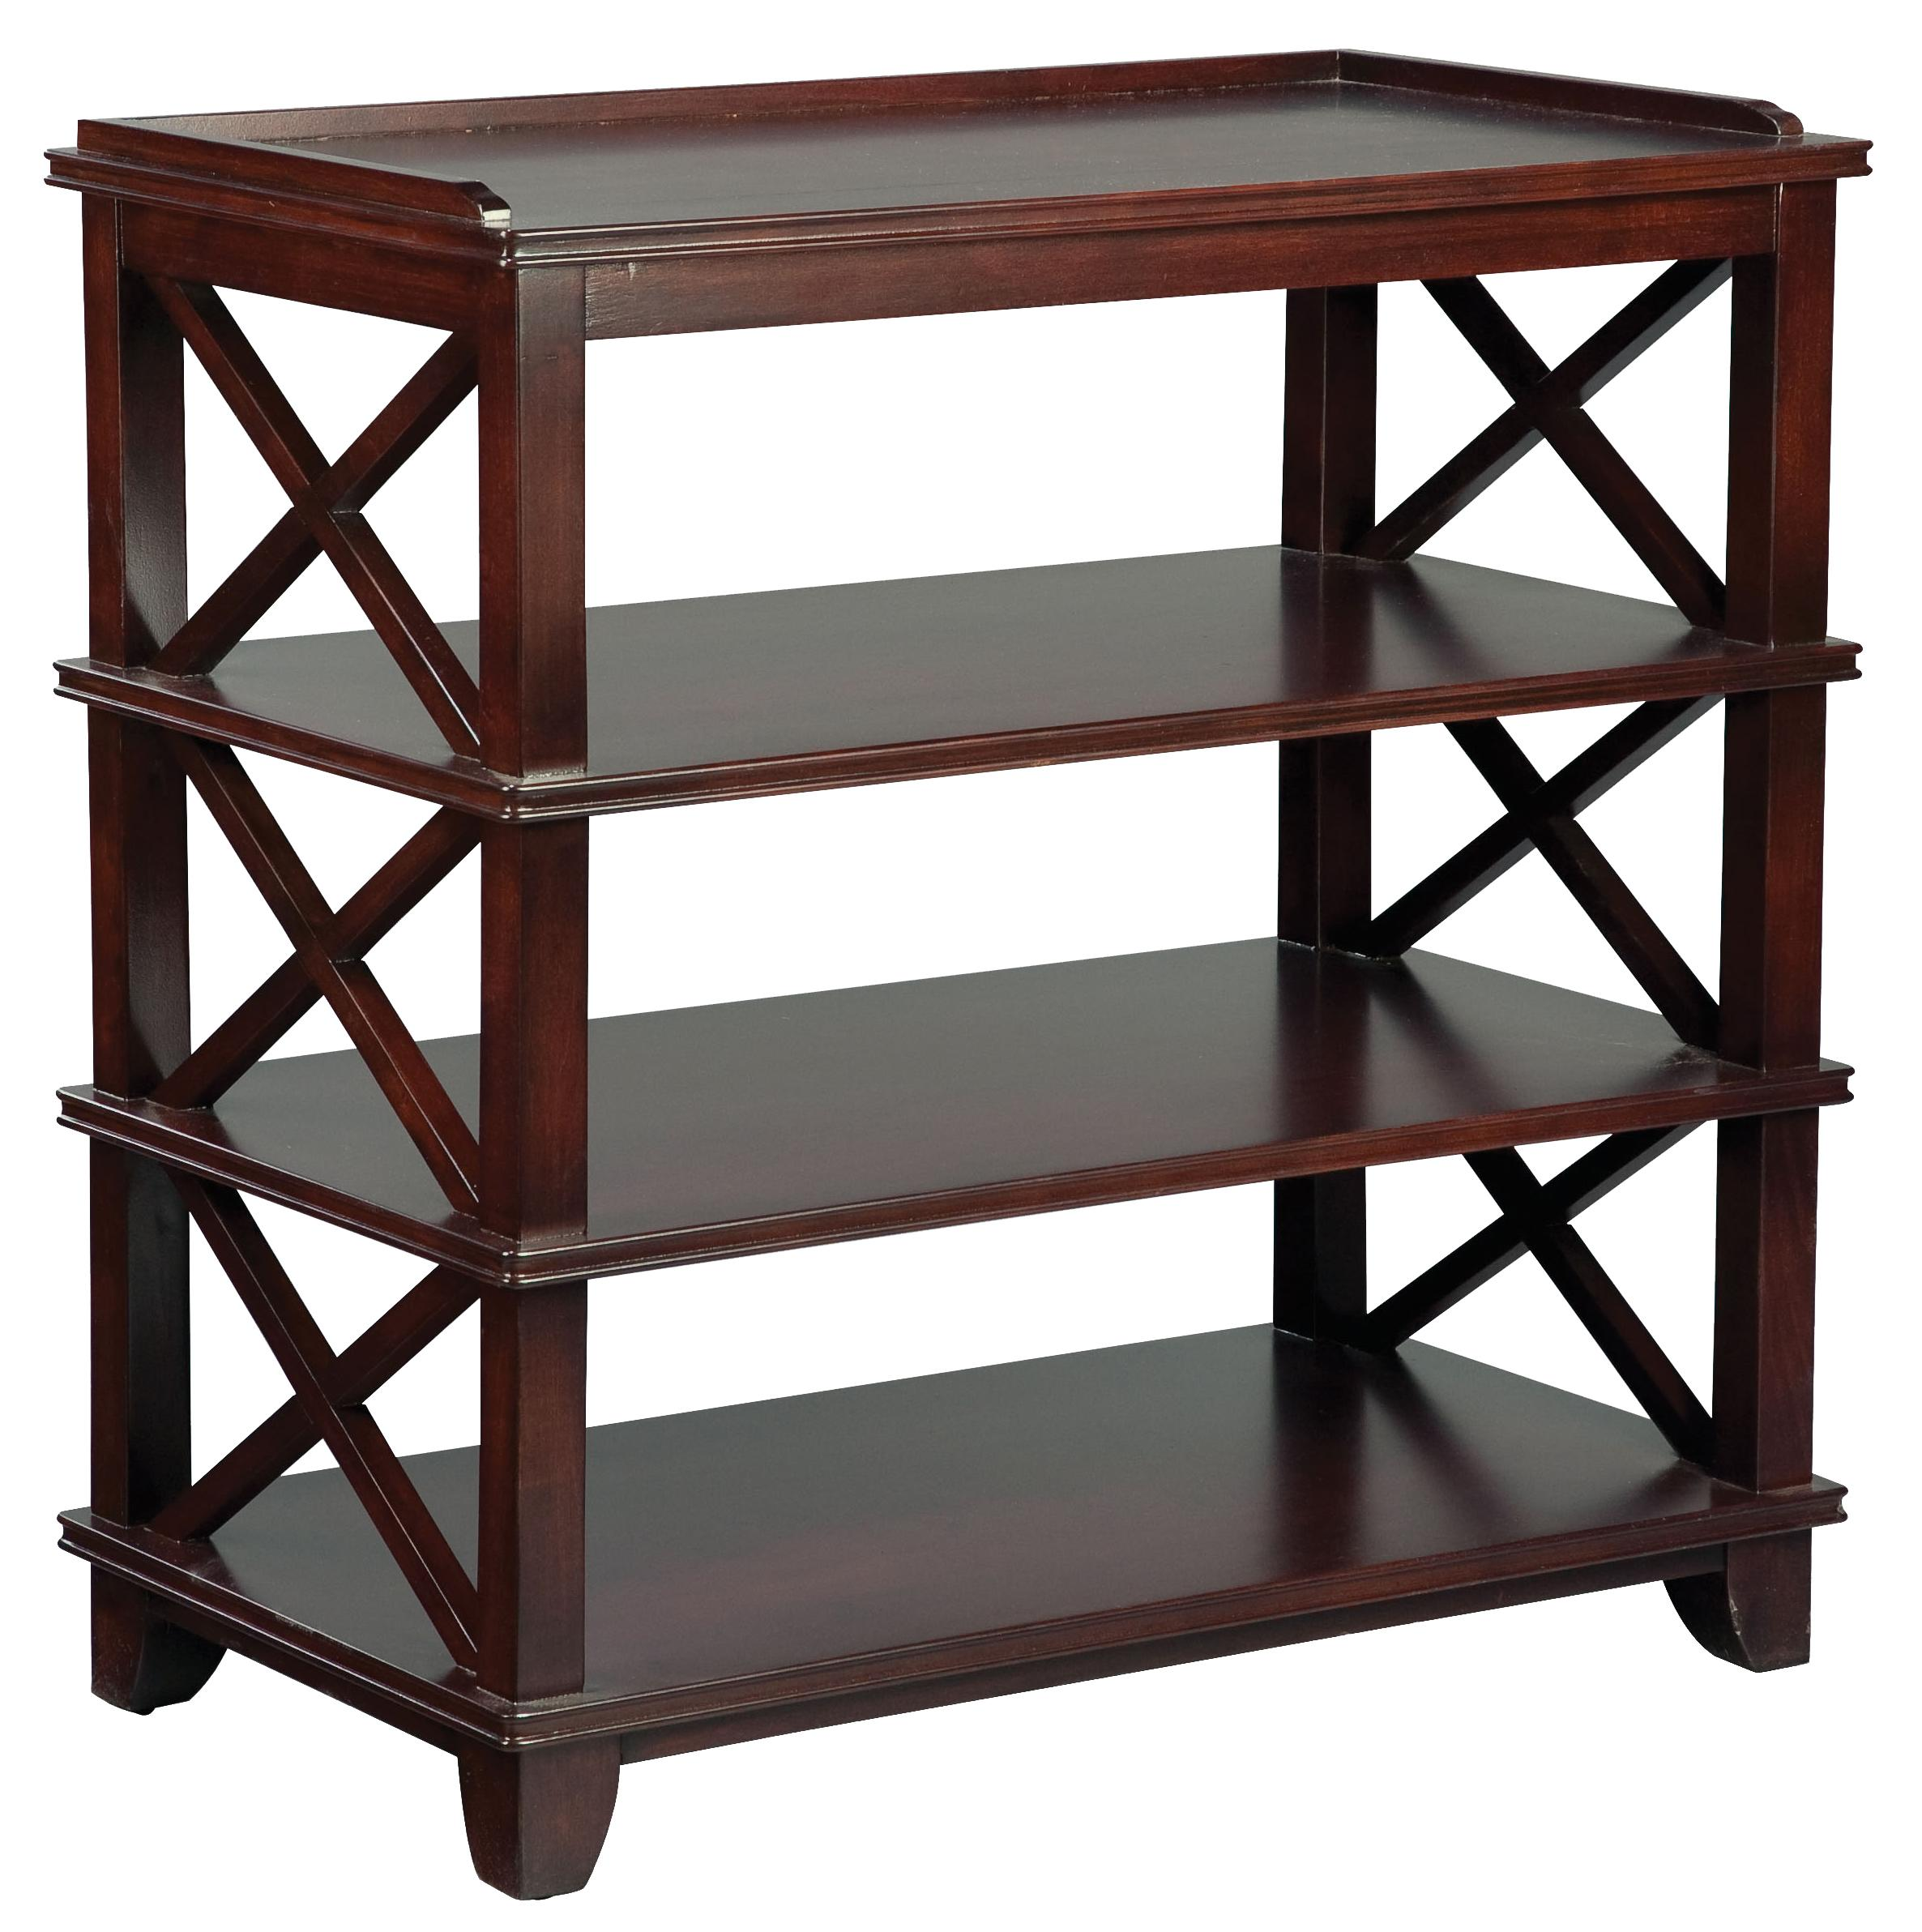 Fairfield tables casual dining room side table with open storage and criss cross pattern - Side table dining room ...